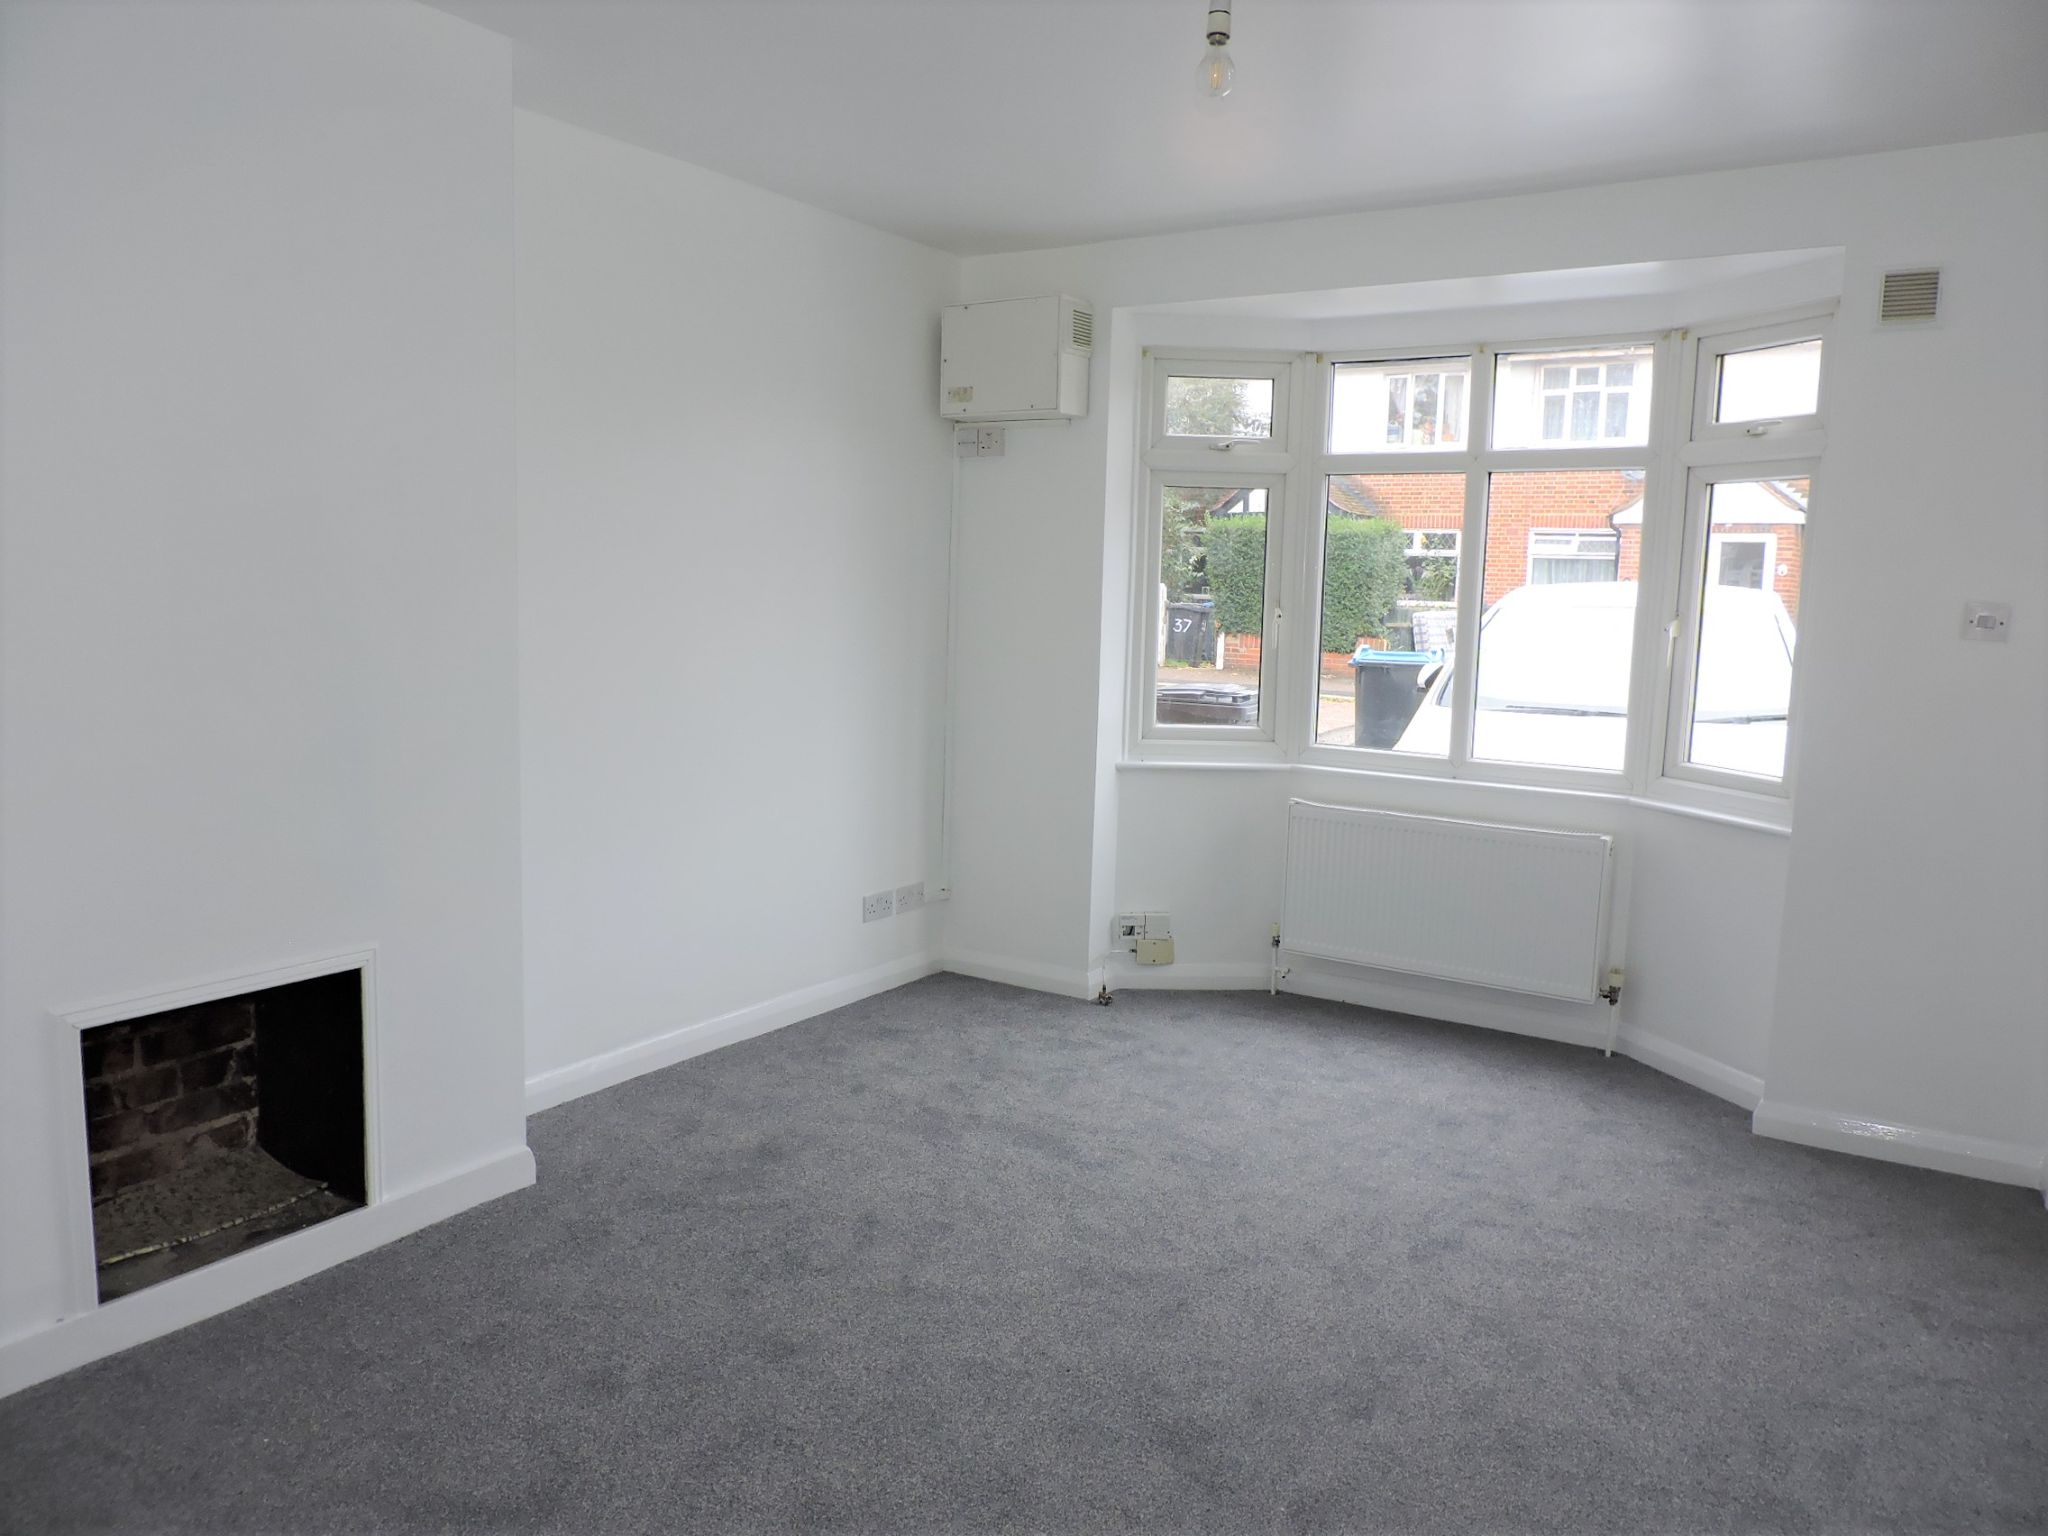 2 bedroom ground floor maisonette flat/apartment Let Agreed in New Malden - Photograph 2